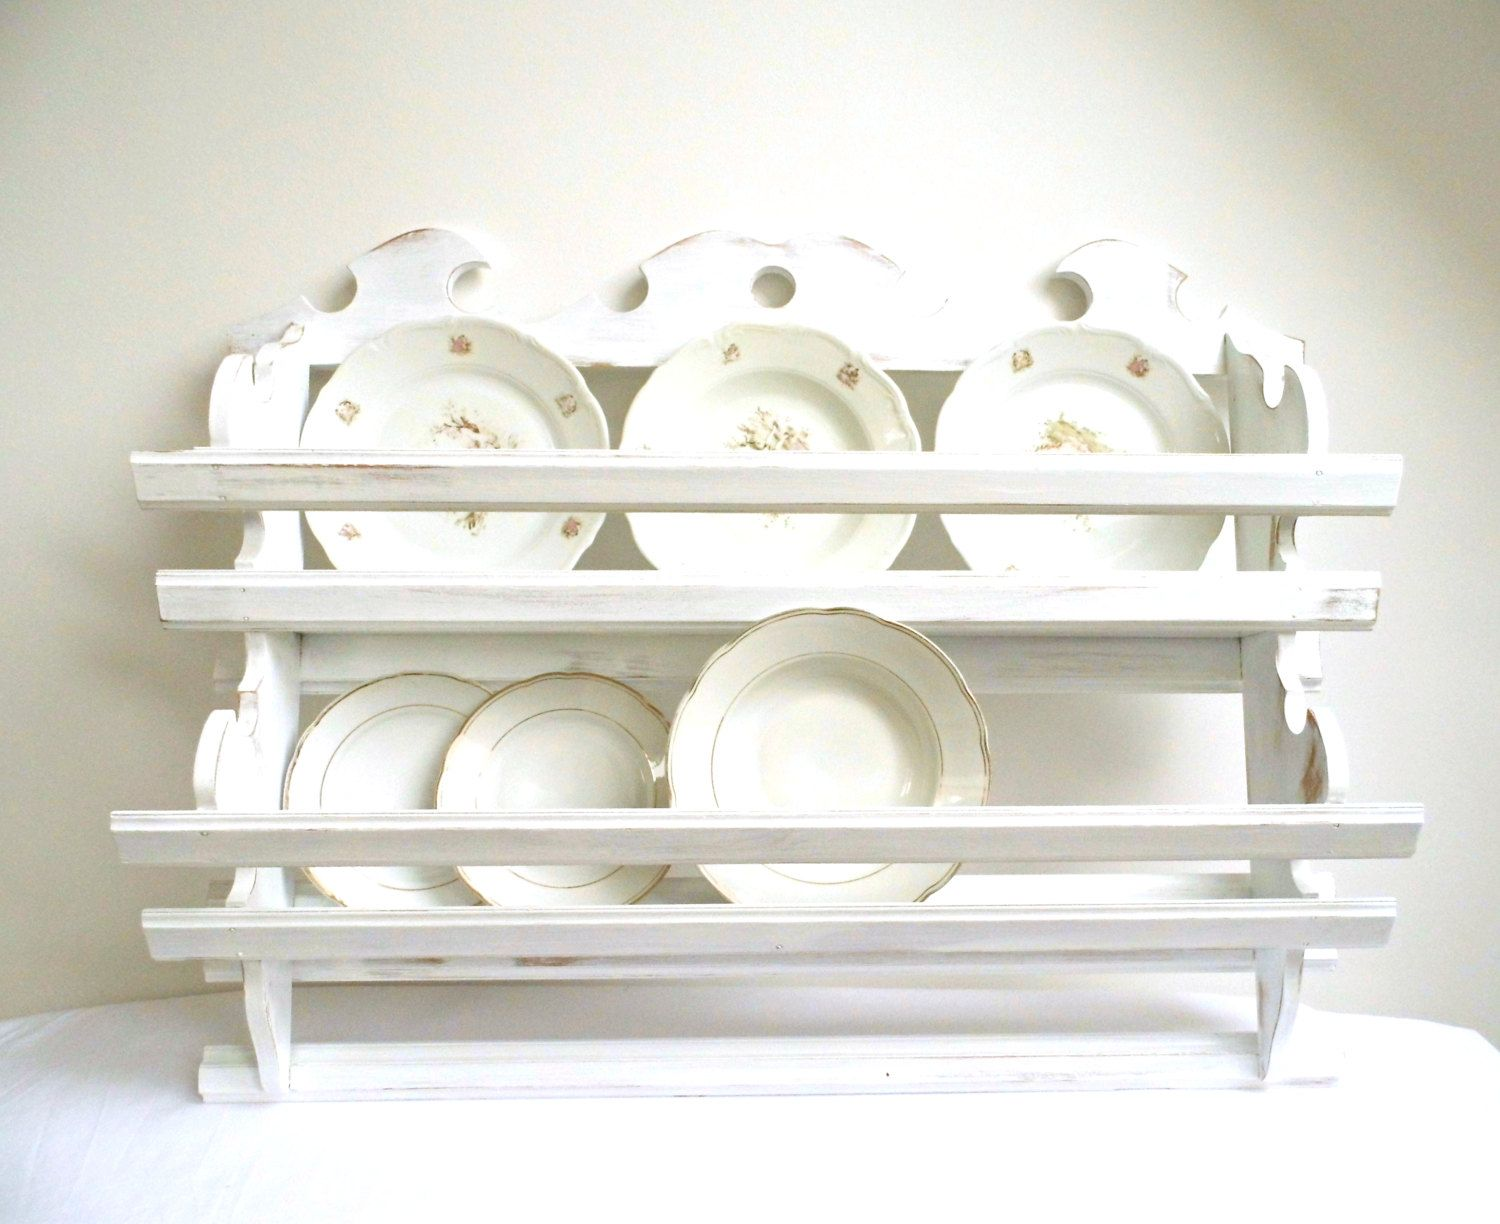 Vintage Plate Rack Wall Holder Tea Cup Shelf Storage Kitchen ...